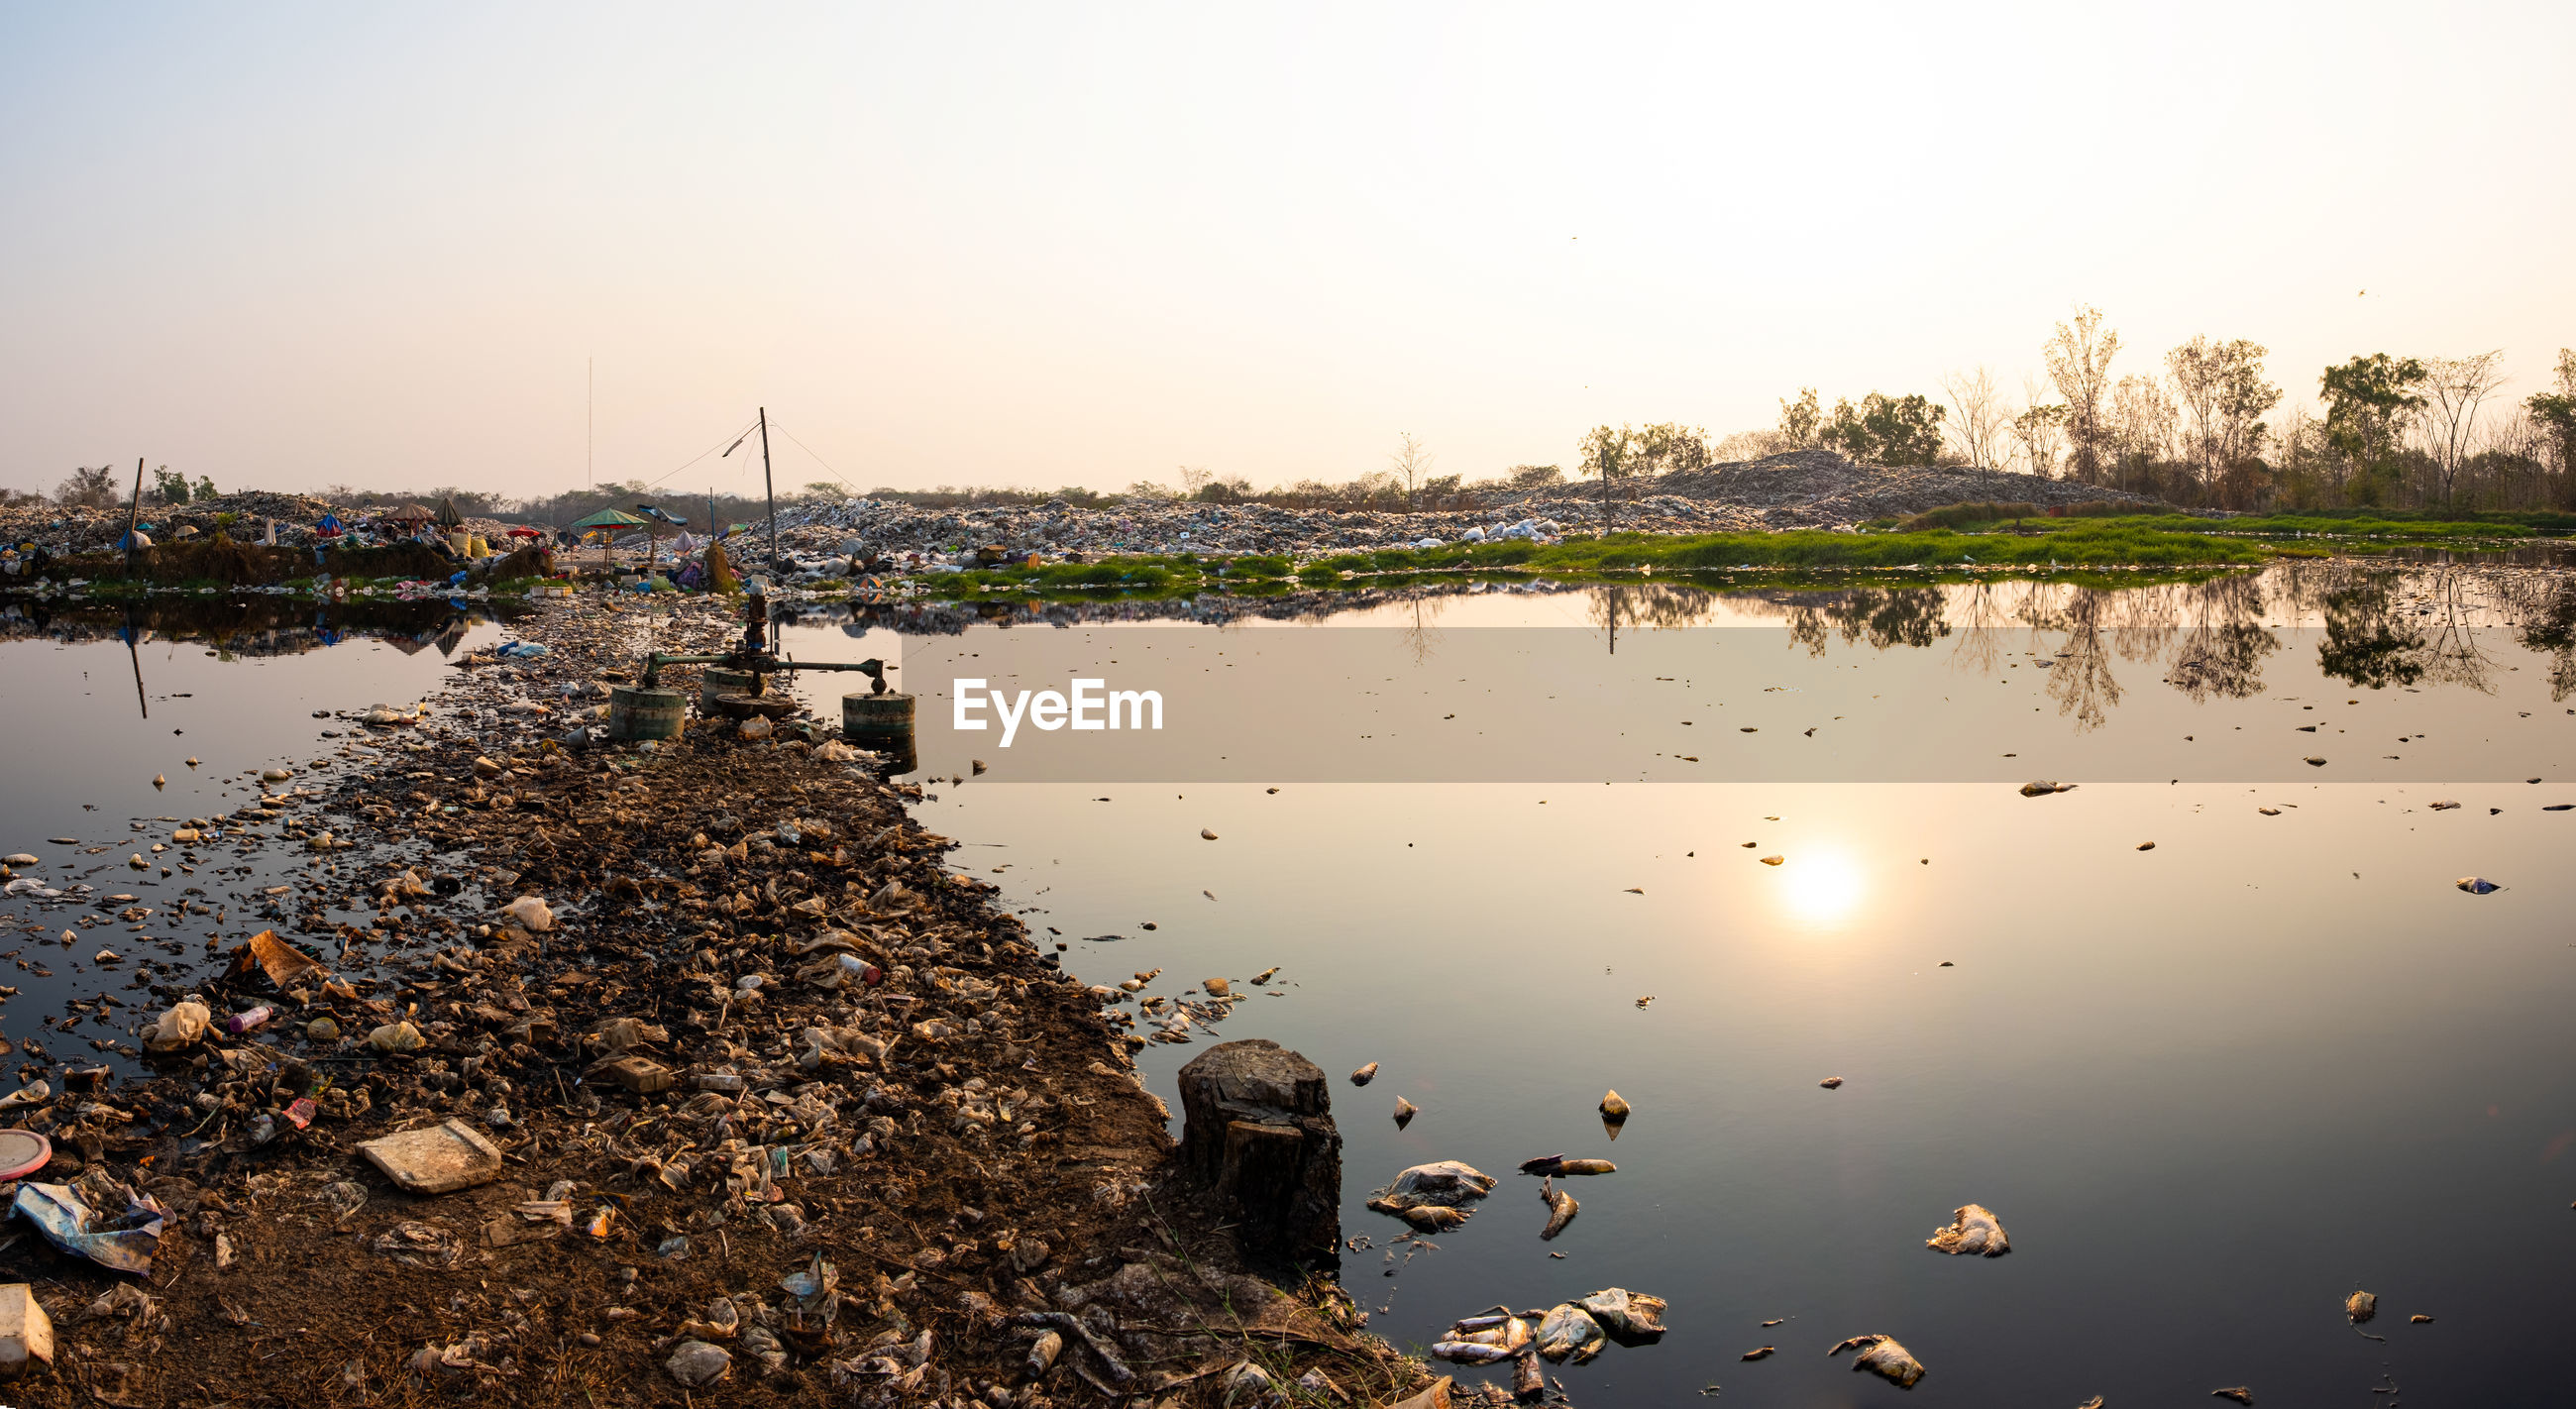 Polluted water and mountain large garbage pile and pollution at the sun is setting in the background